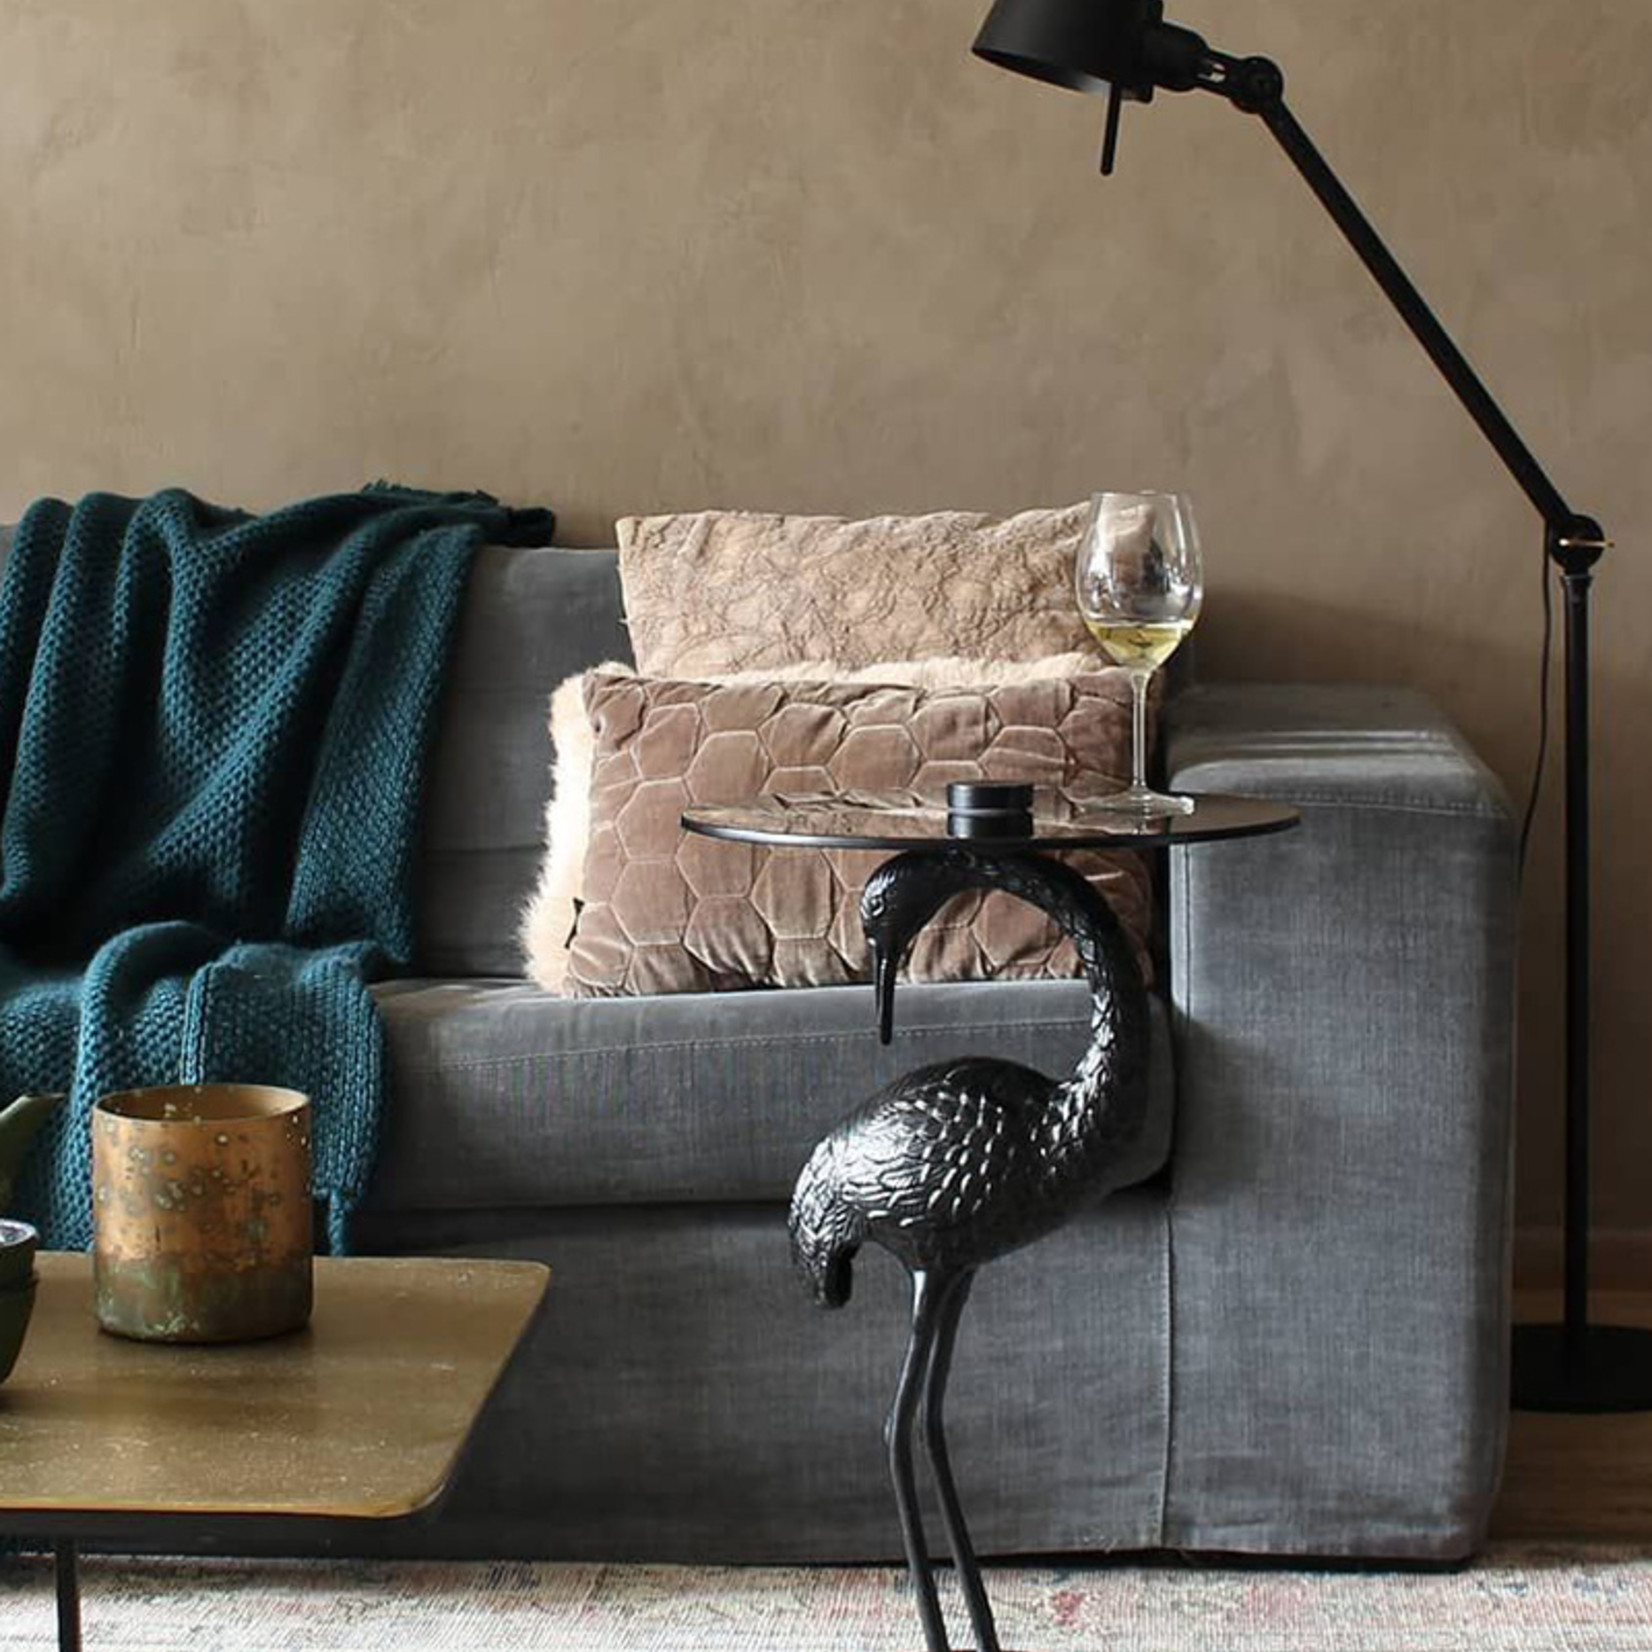 ZUIVER BV Crane Side Table